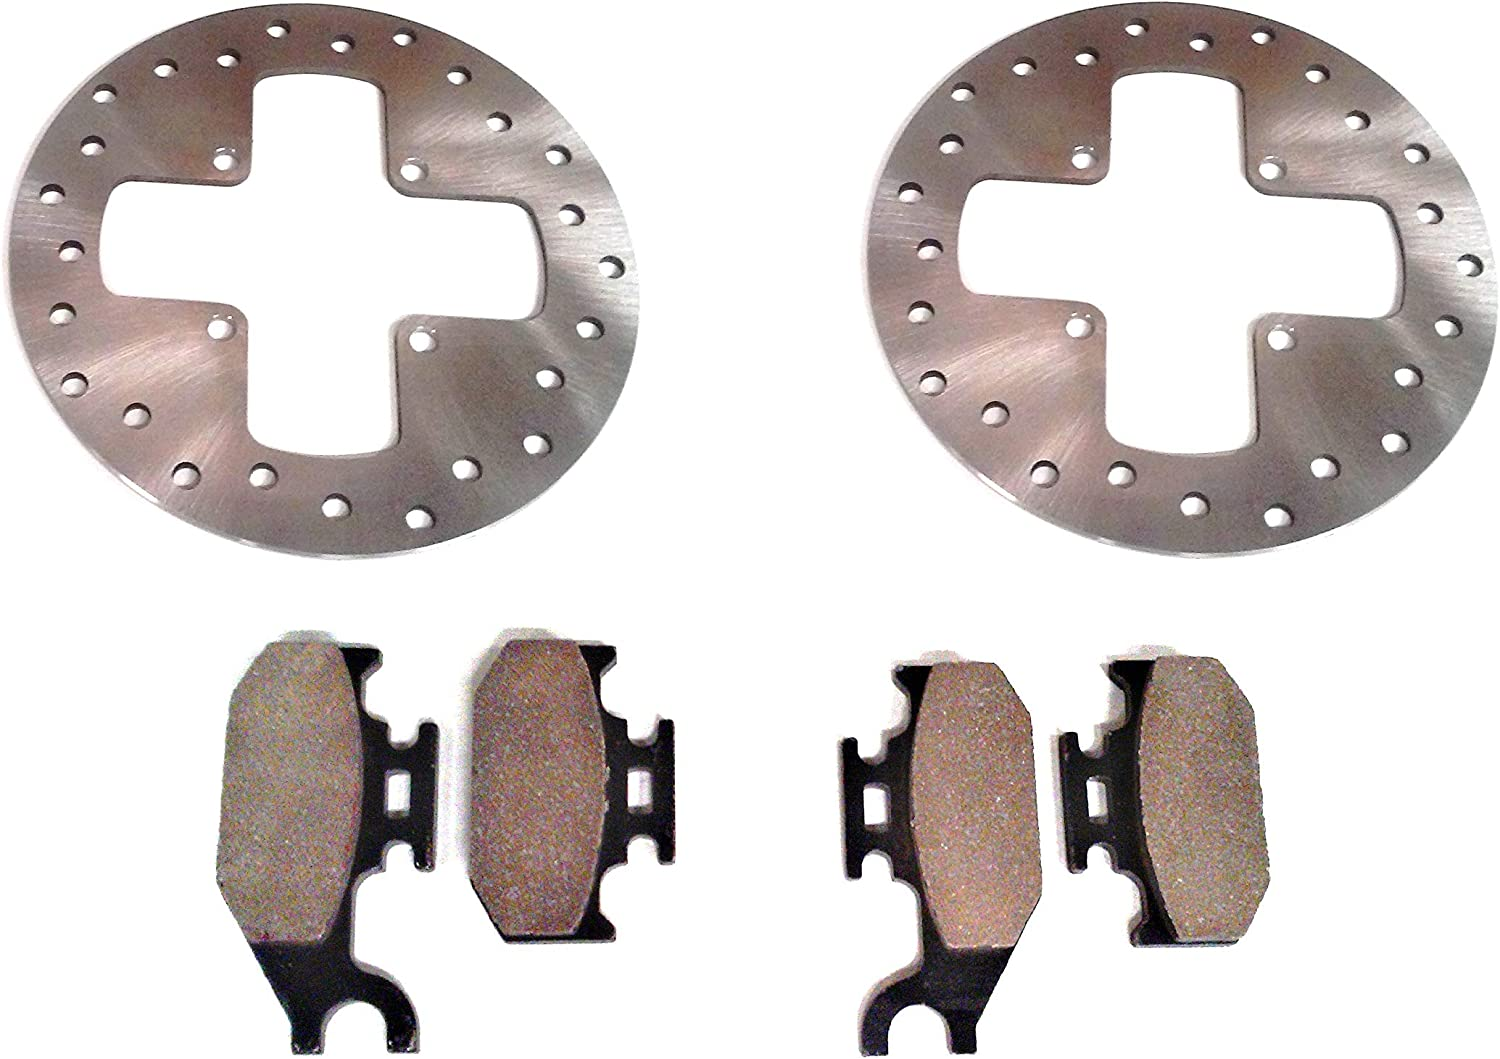 800 650 500 Max 705600349 705600350 Pair of Front Disc Brake Rotors with Pads for Can-Am 4x4 ATV 400 Fits Various Outlander 330 Replacement to OE # 705600603